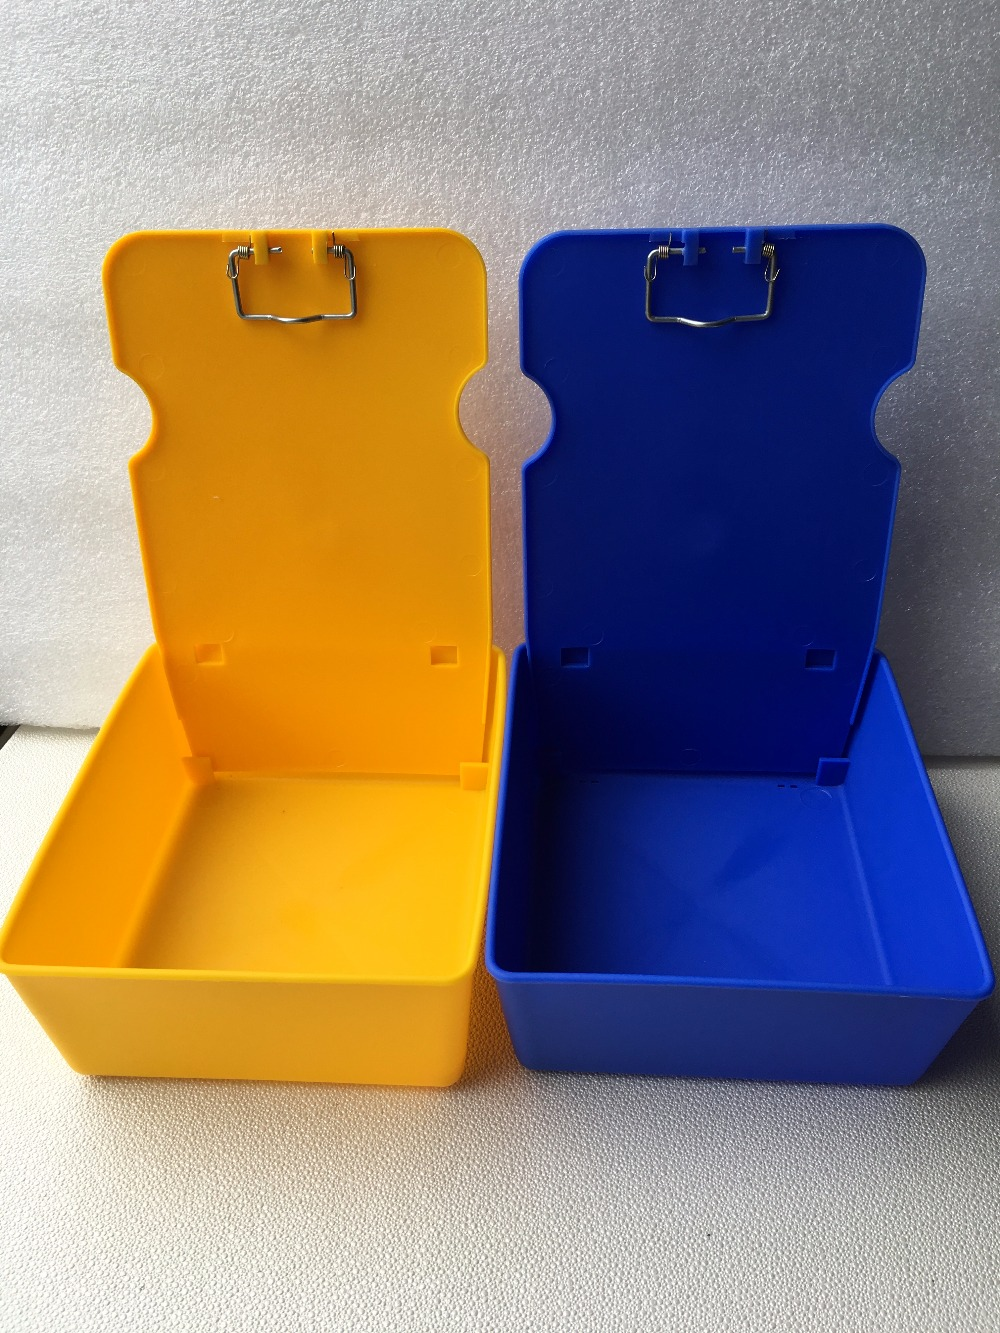 Image 2 - 10pcs Dental Laboratory Working Case Pan Tray lab Equipment Plastic Work Case Pans With Clip Holder-in Teeth Whitening from Beauty & Health